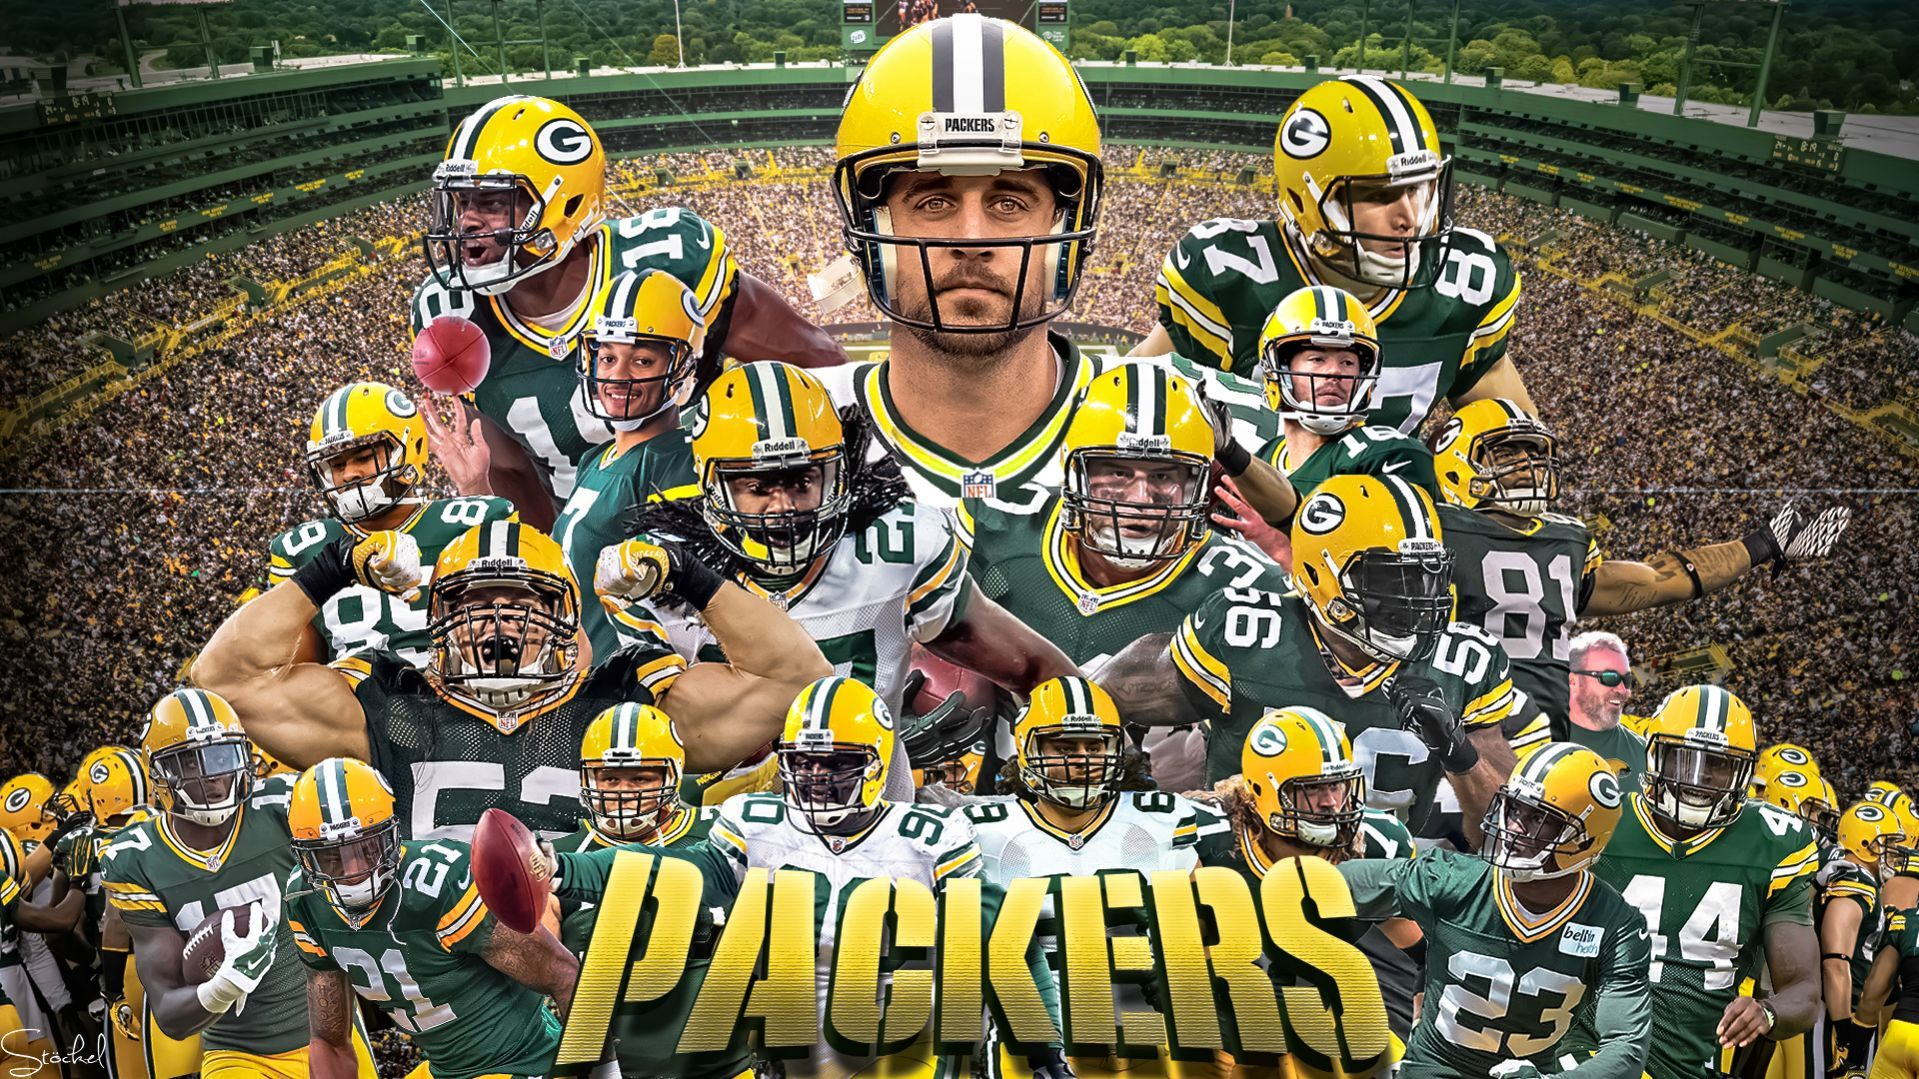 Green bay packers wallpapers wallpaper greenbay packers green bay packers wallpapers wallpaper voltagebd Image collections